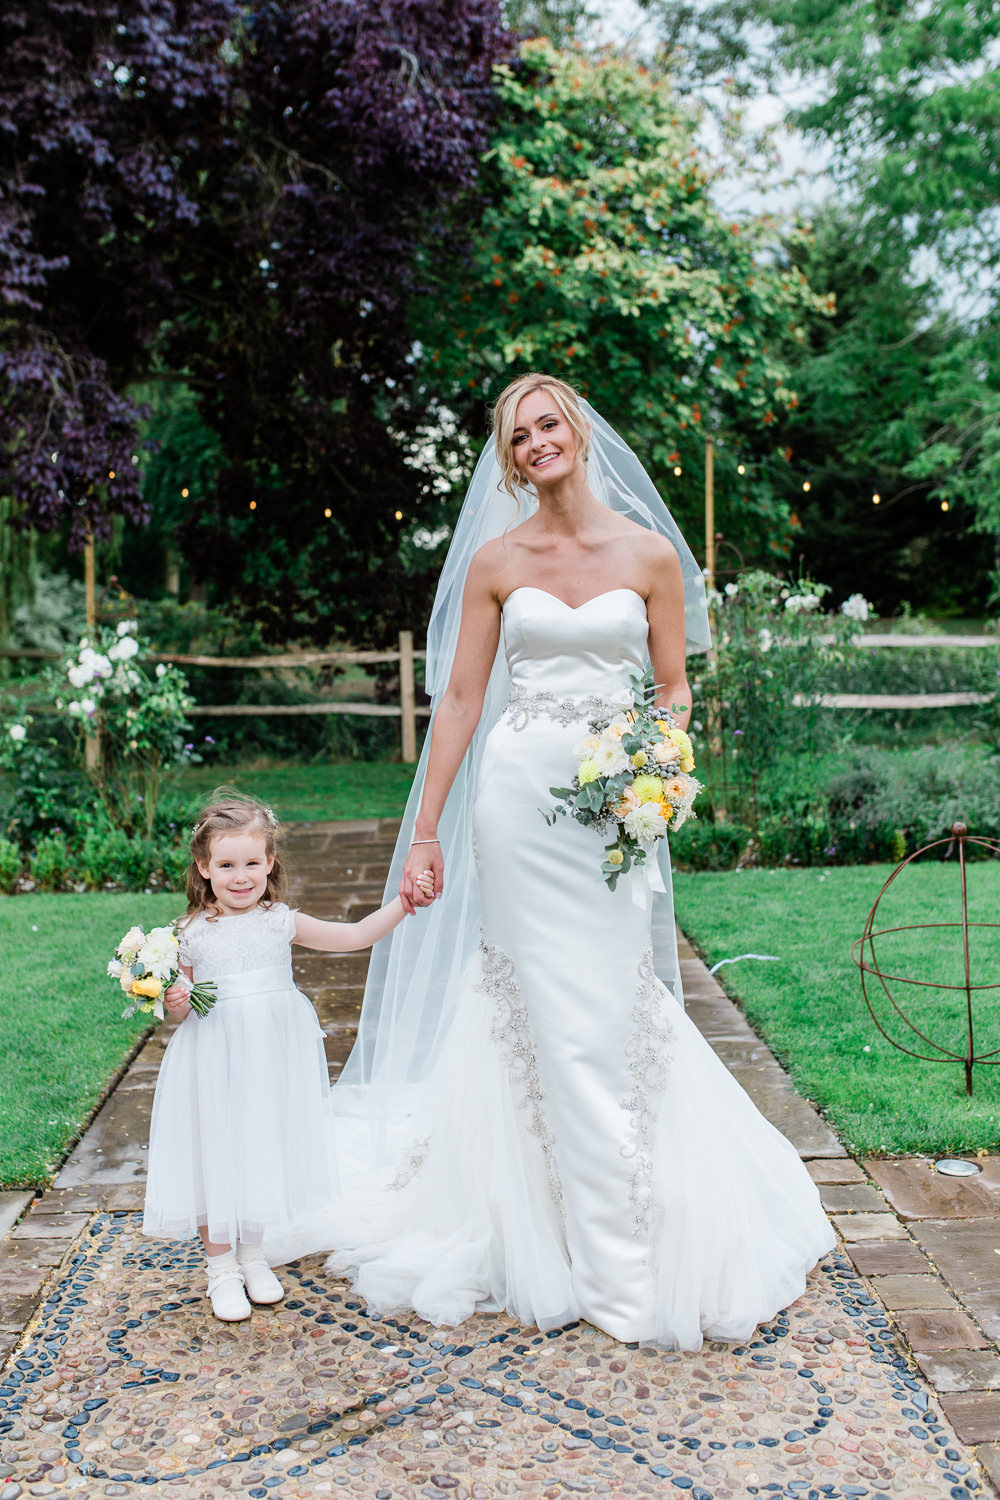 Bride Bridal Sweetheart Neckline Fit And Flare Fishtail Dress Gown Flower Girl White Veil Bouquet Creative Summer Wedding Gemma Giorgio Photography